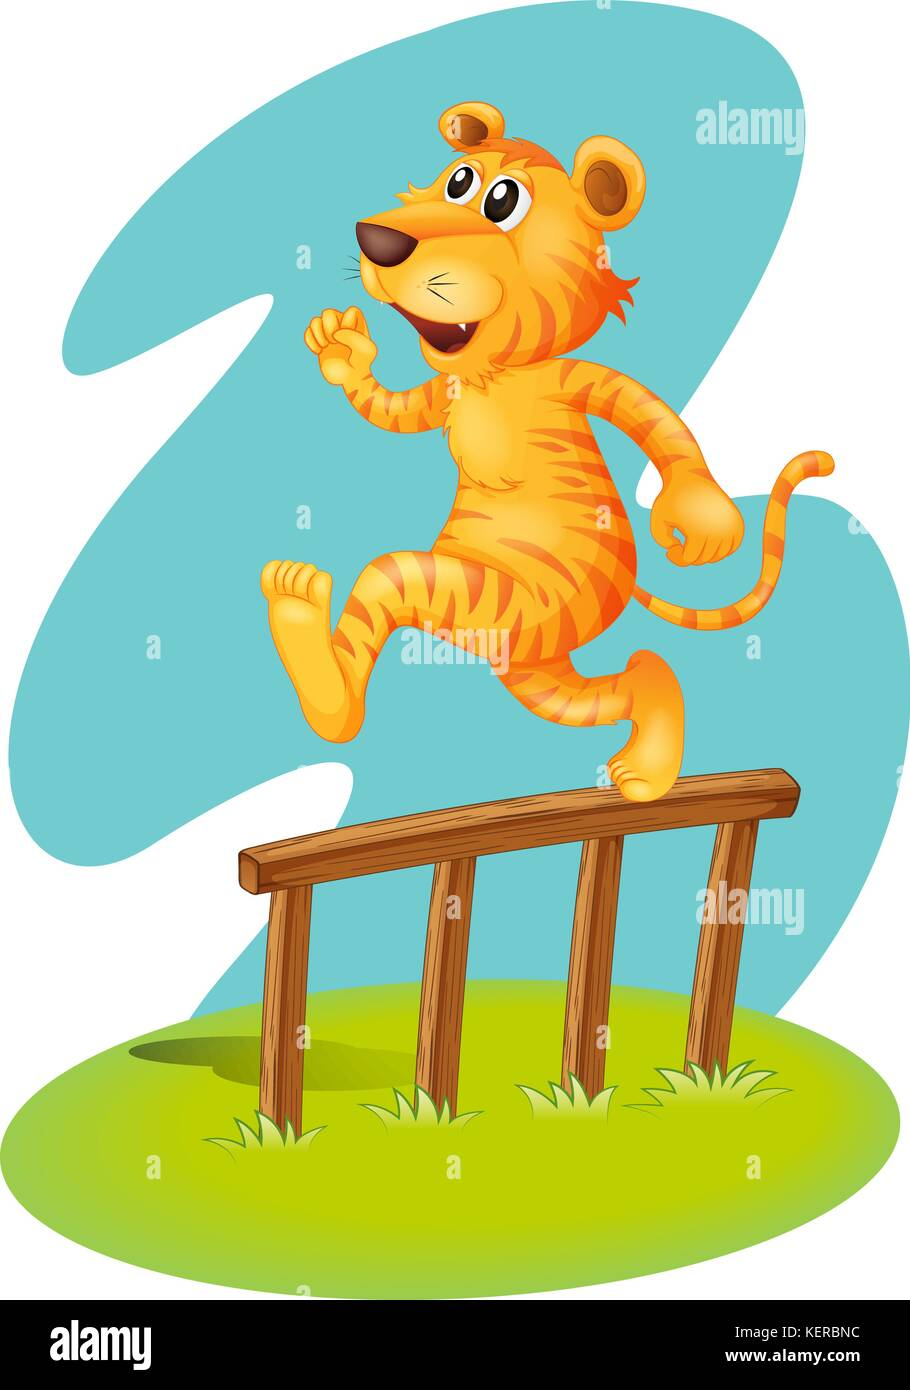 Illustration of a brave tiger jumping over the wooden fence on a white background - Stock Vector